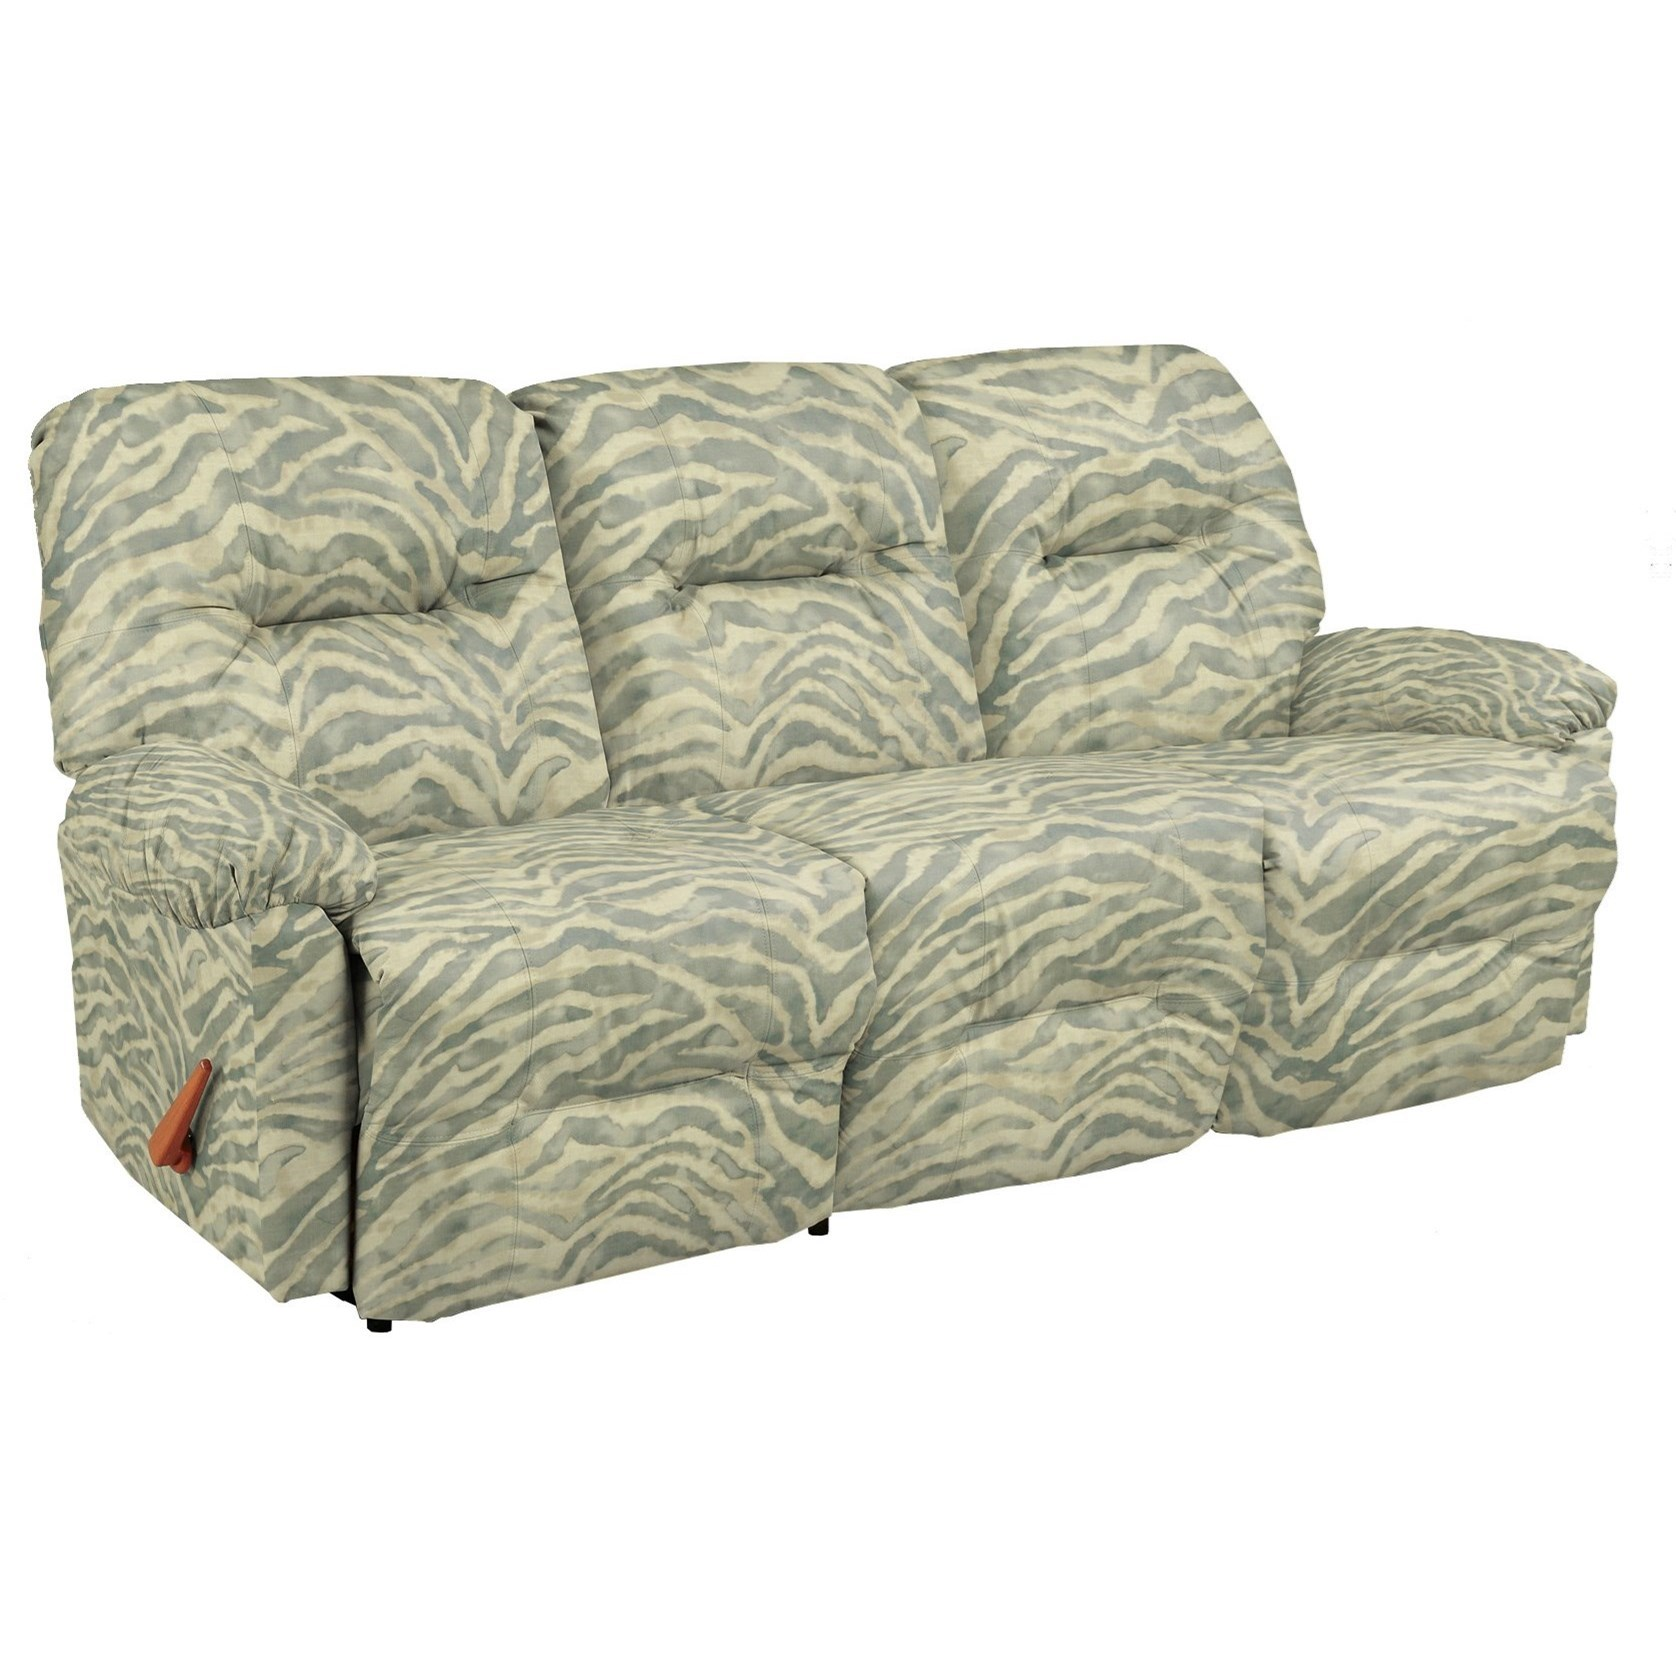 Best Home Furnishings Redford Power Reclining Sofa - Item Number: -513049128-35813